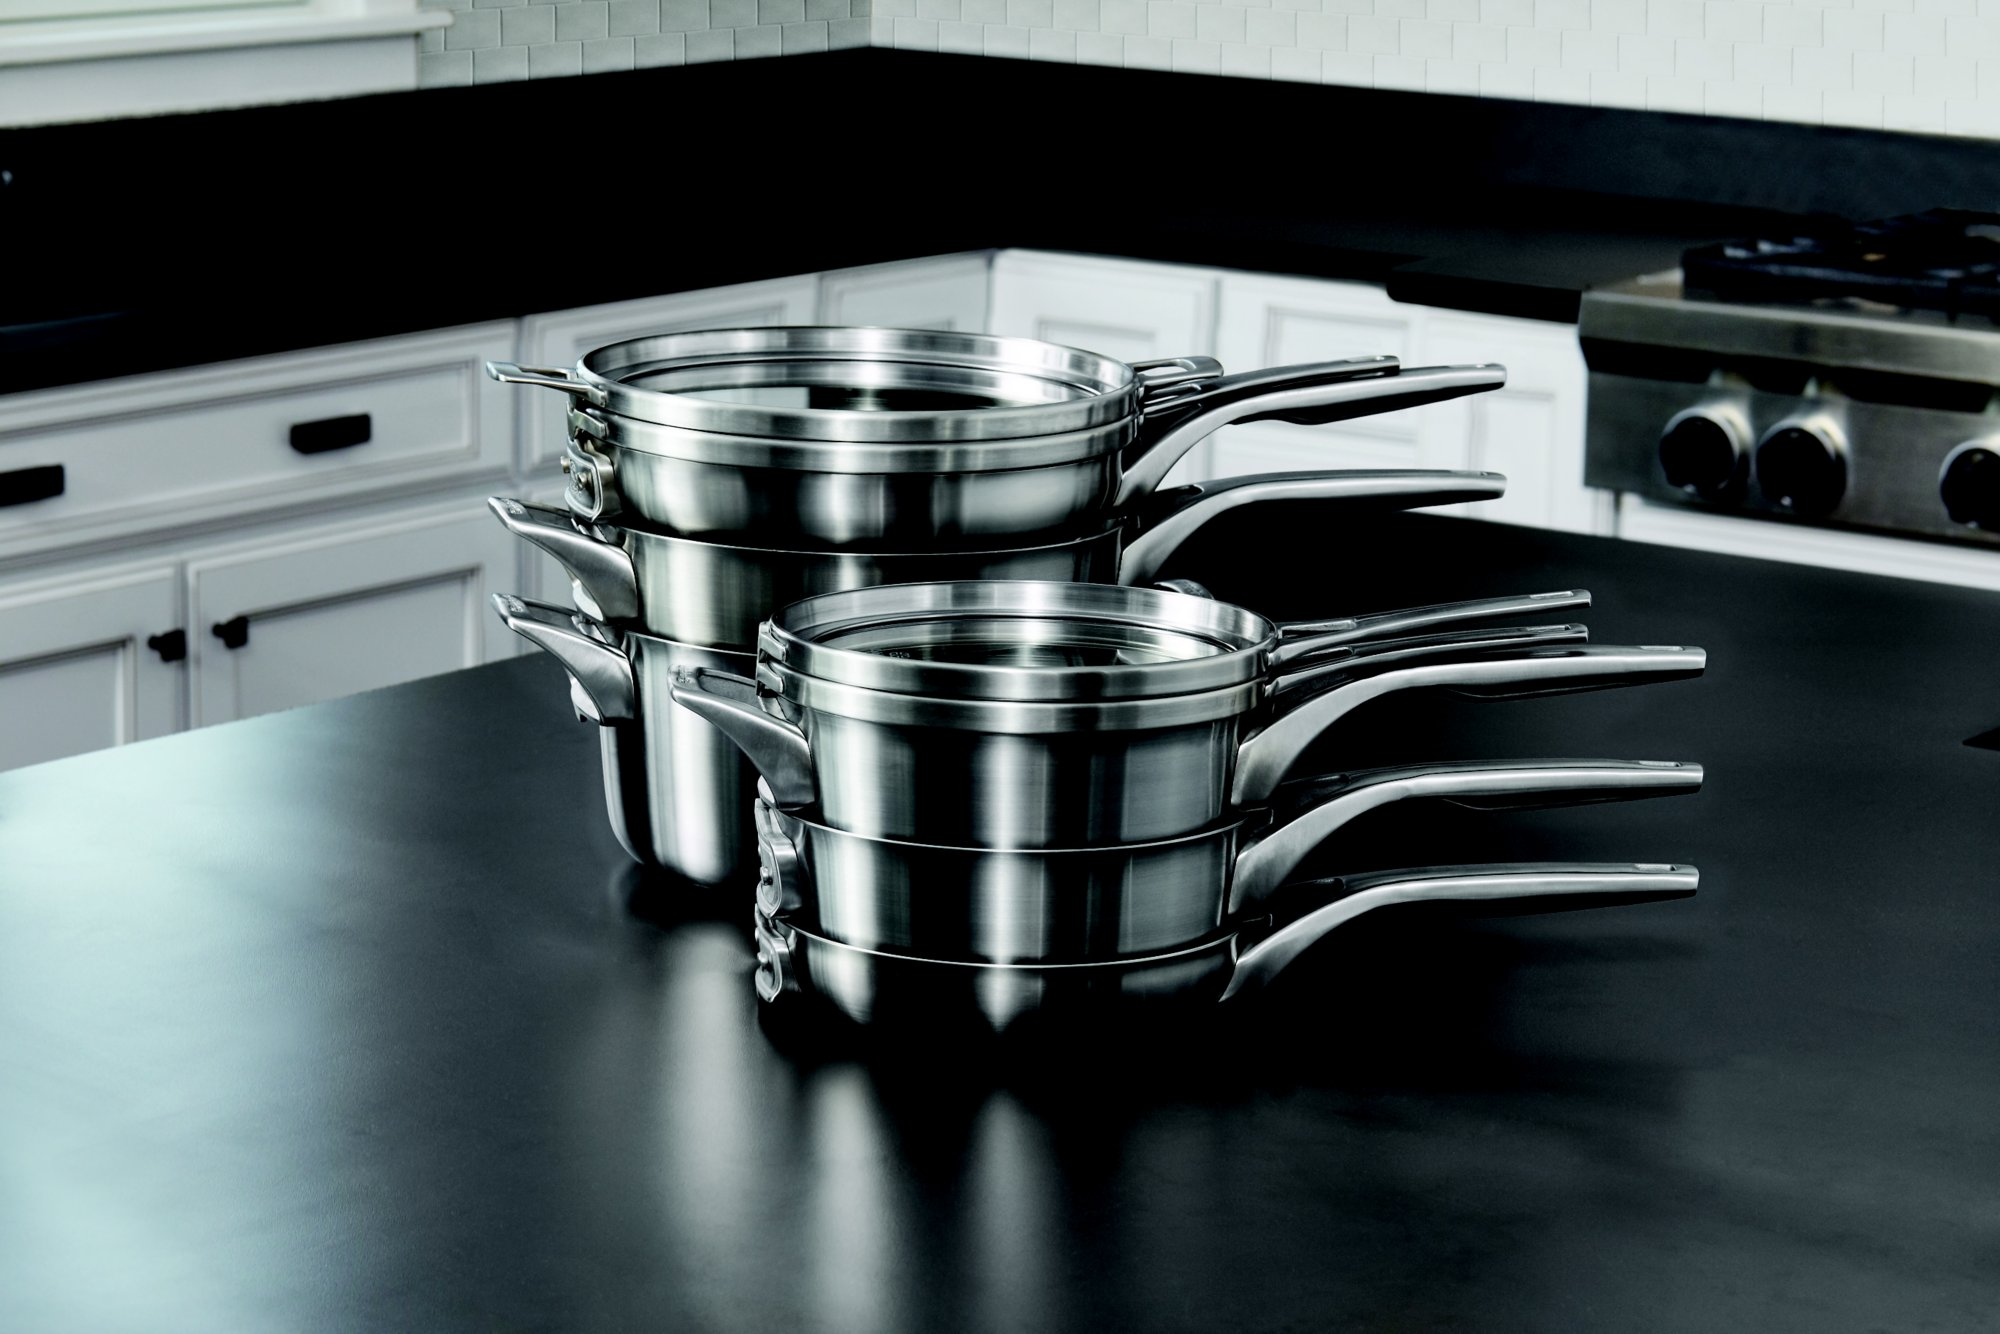 calphalon premier space saving stainless steel cookware securely stacks to save 30 more space plus the unique cookware design and flat glass covers